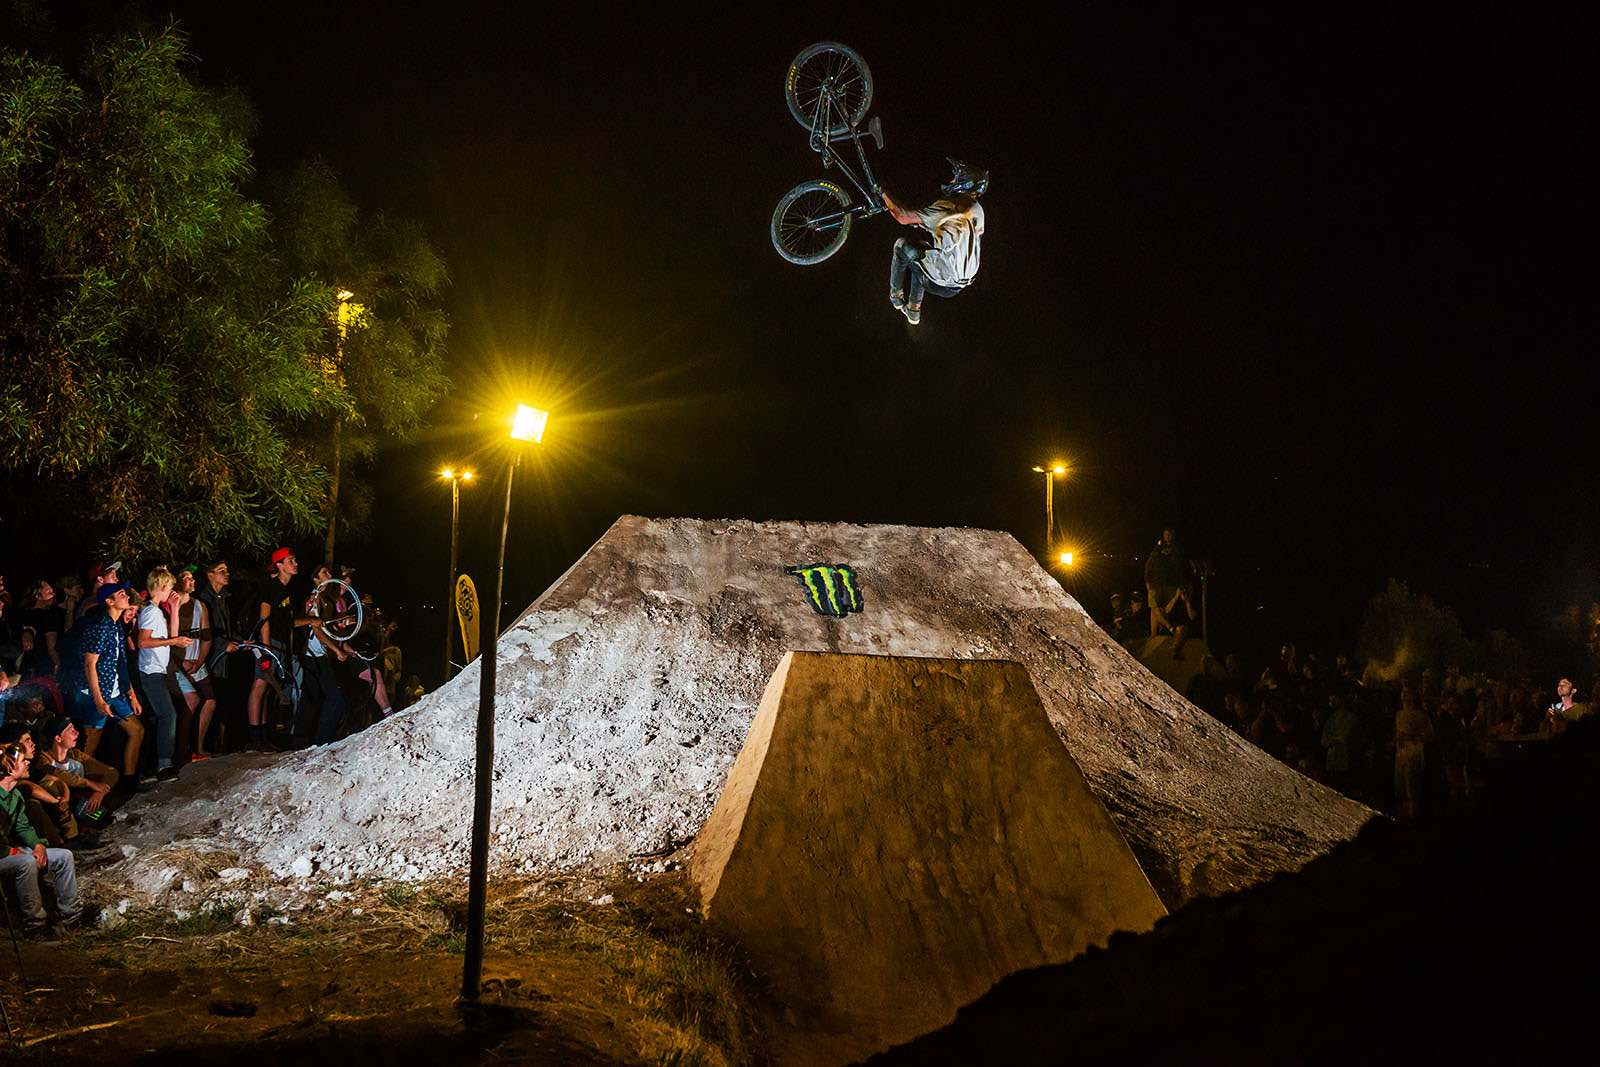 The Night Harvest MTB Best trick winner Lukas Skiold sending a clean flip whip to barspin to take the best trick title